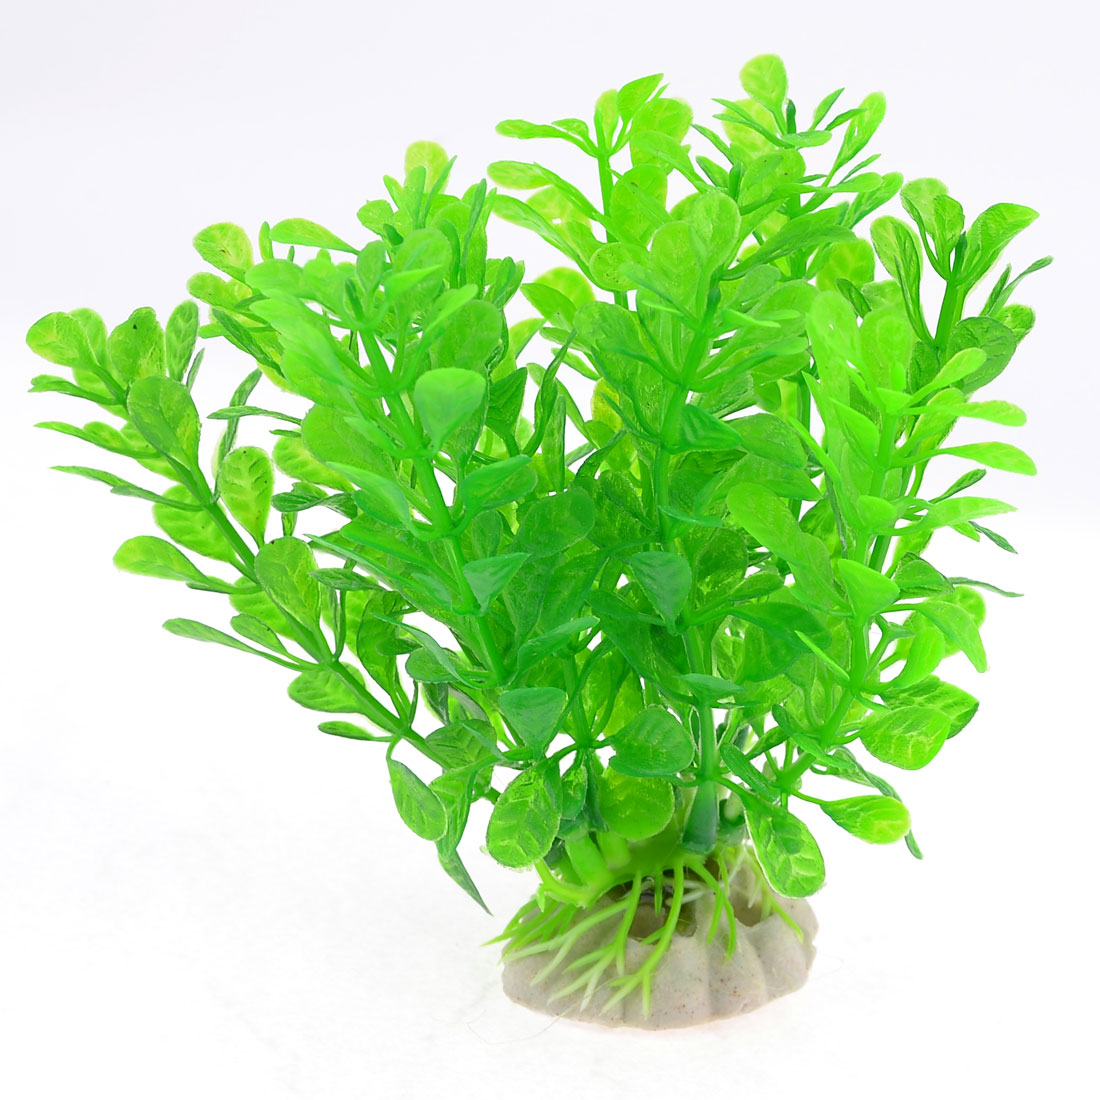 Green Aquarium Ceramic Base Artificial Plant Grass 10cm High